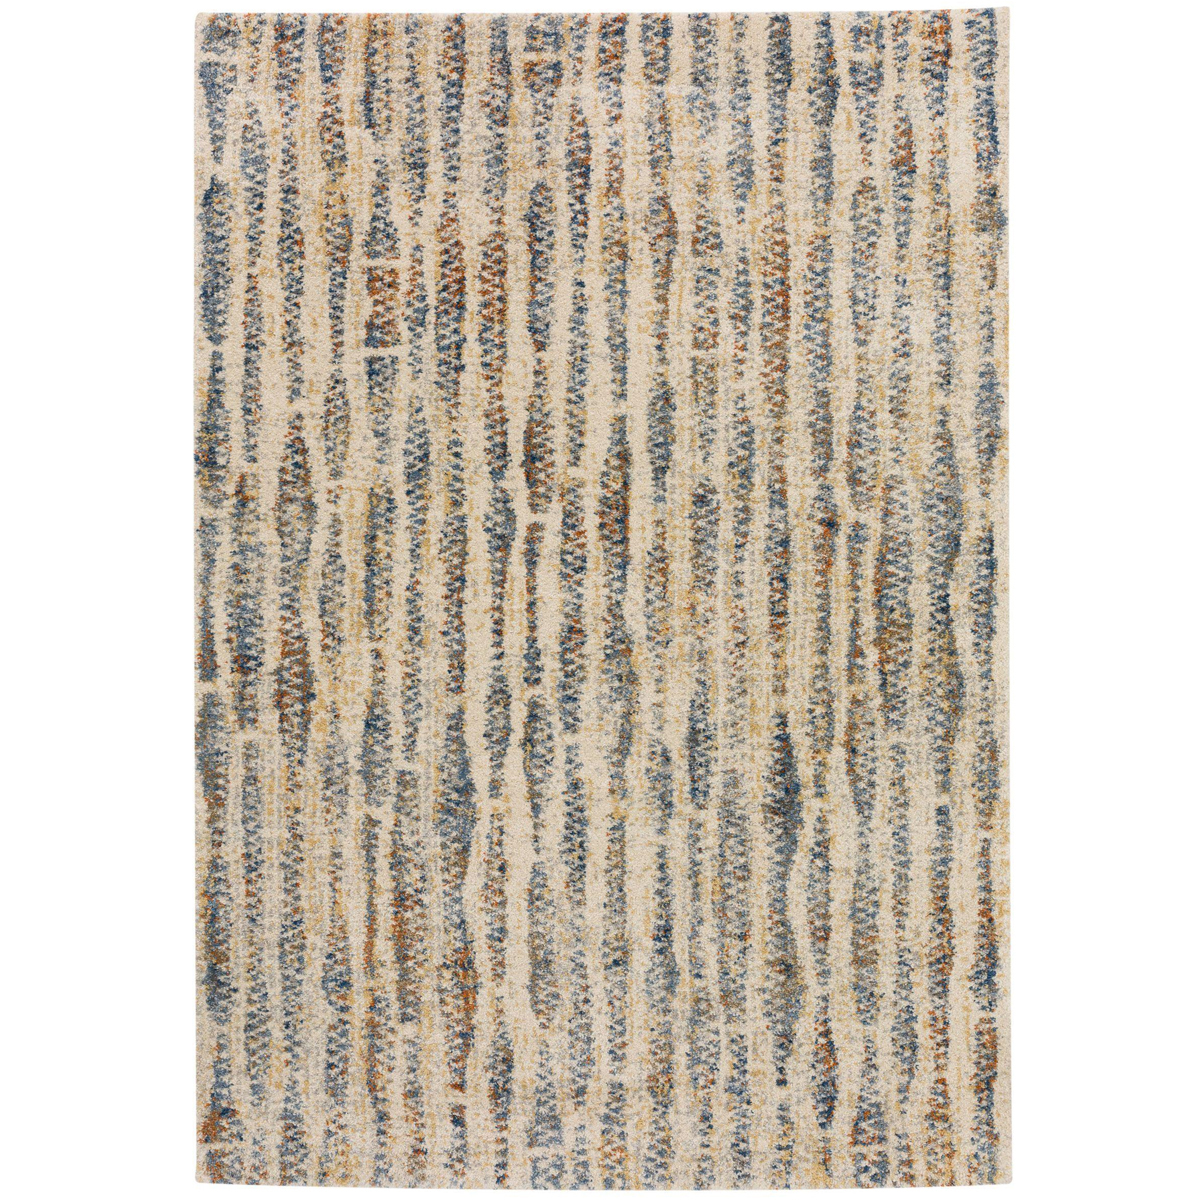 Picture of ORLEANS 16 MULTI 5'1X7'5 RUG